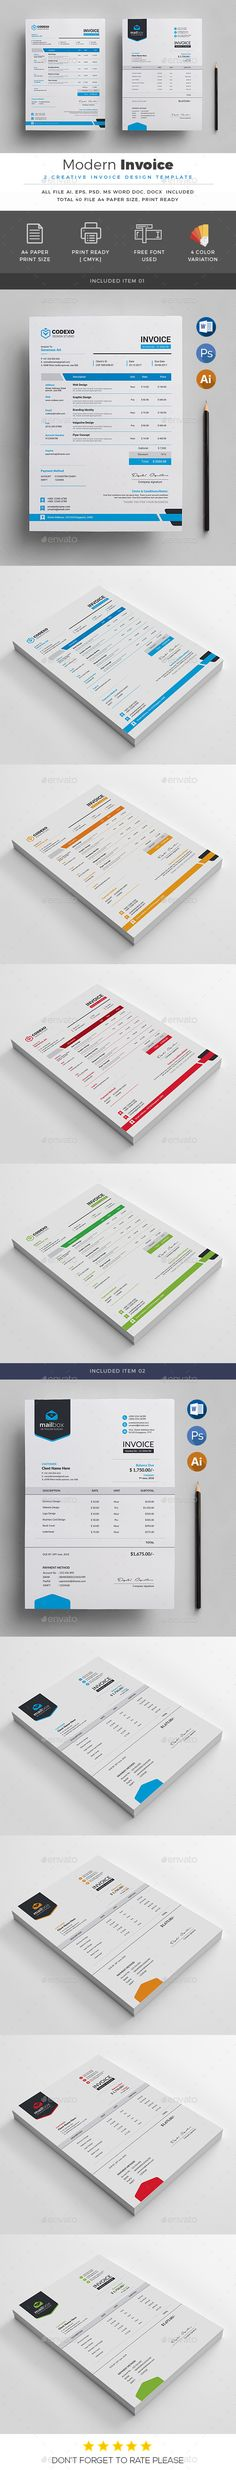 Invoice Template PSD, Vector EPS, AI Illustrator, MS Word doc & docx - A4 & US Letter Size